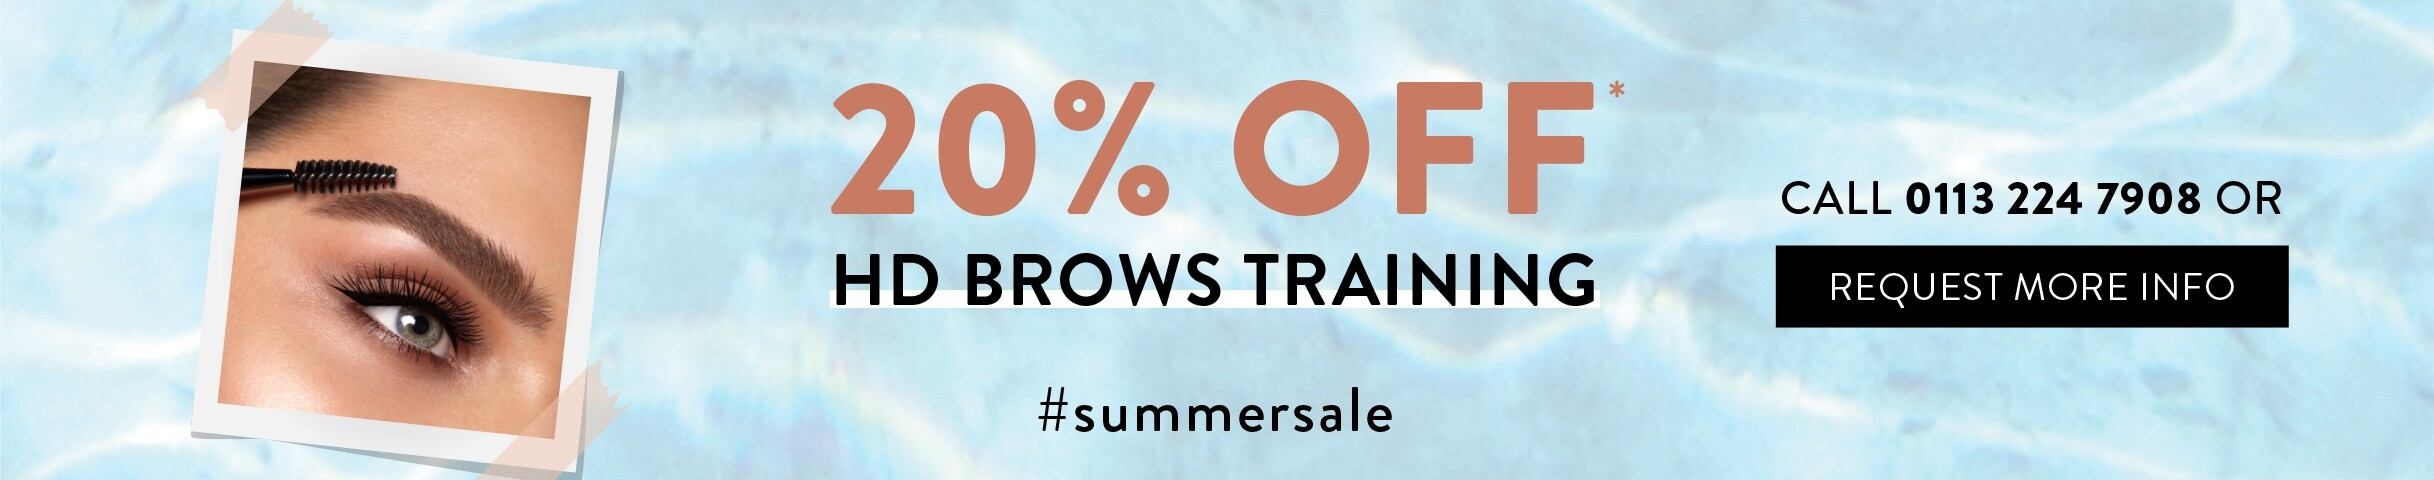 20% off HD Brows Training